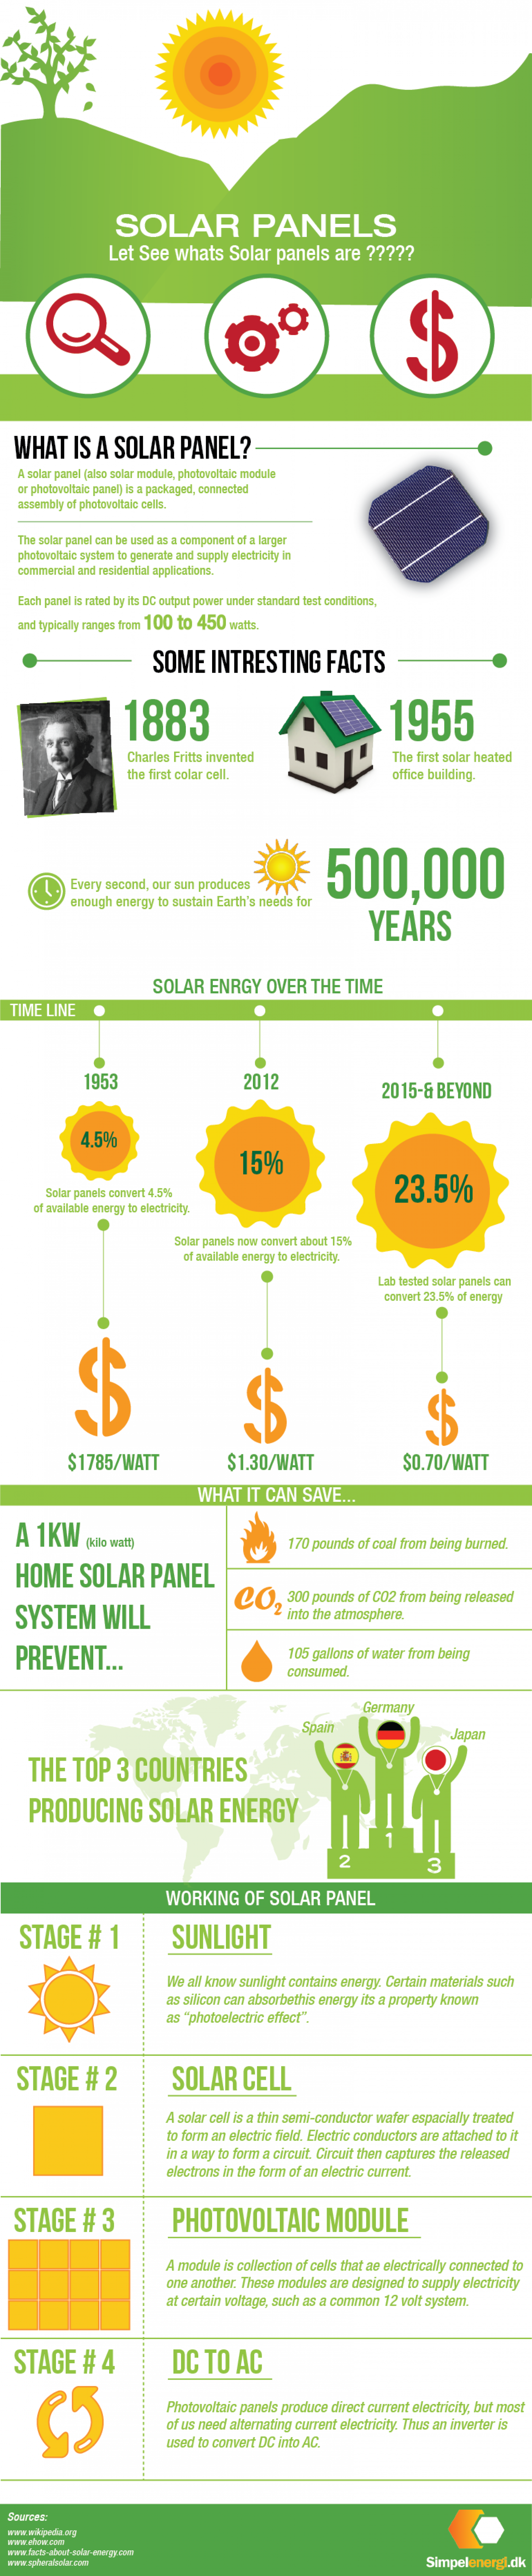 Solar panels infographic Infographic